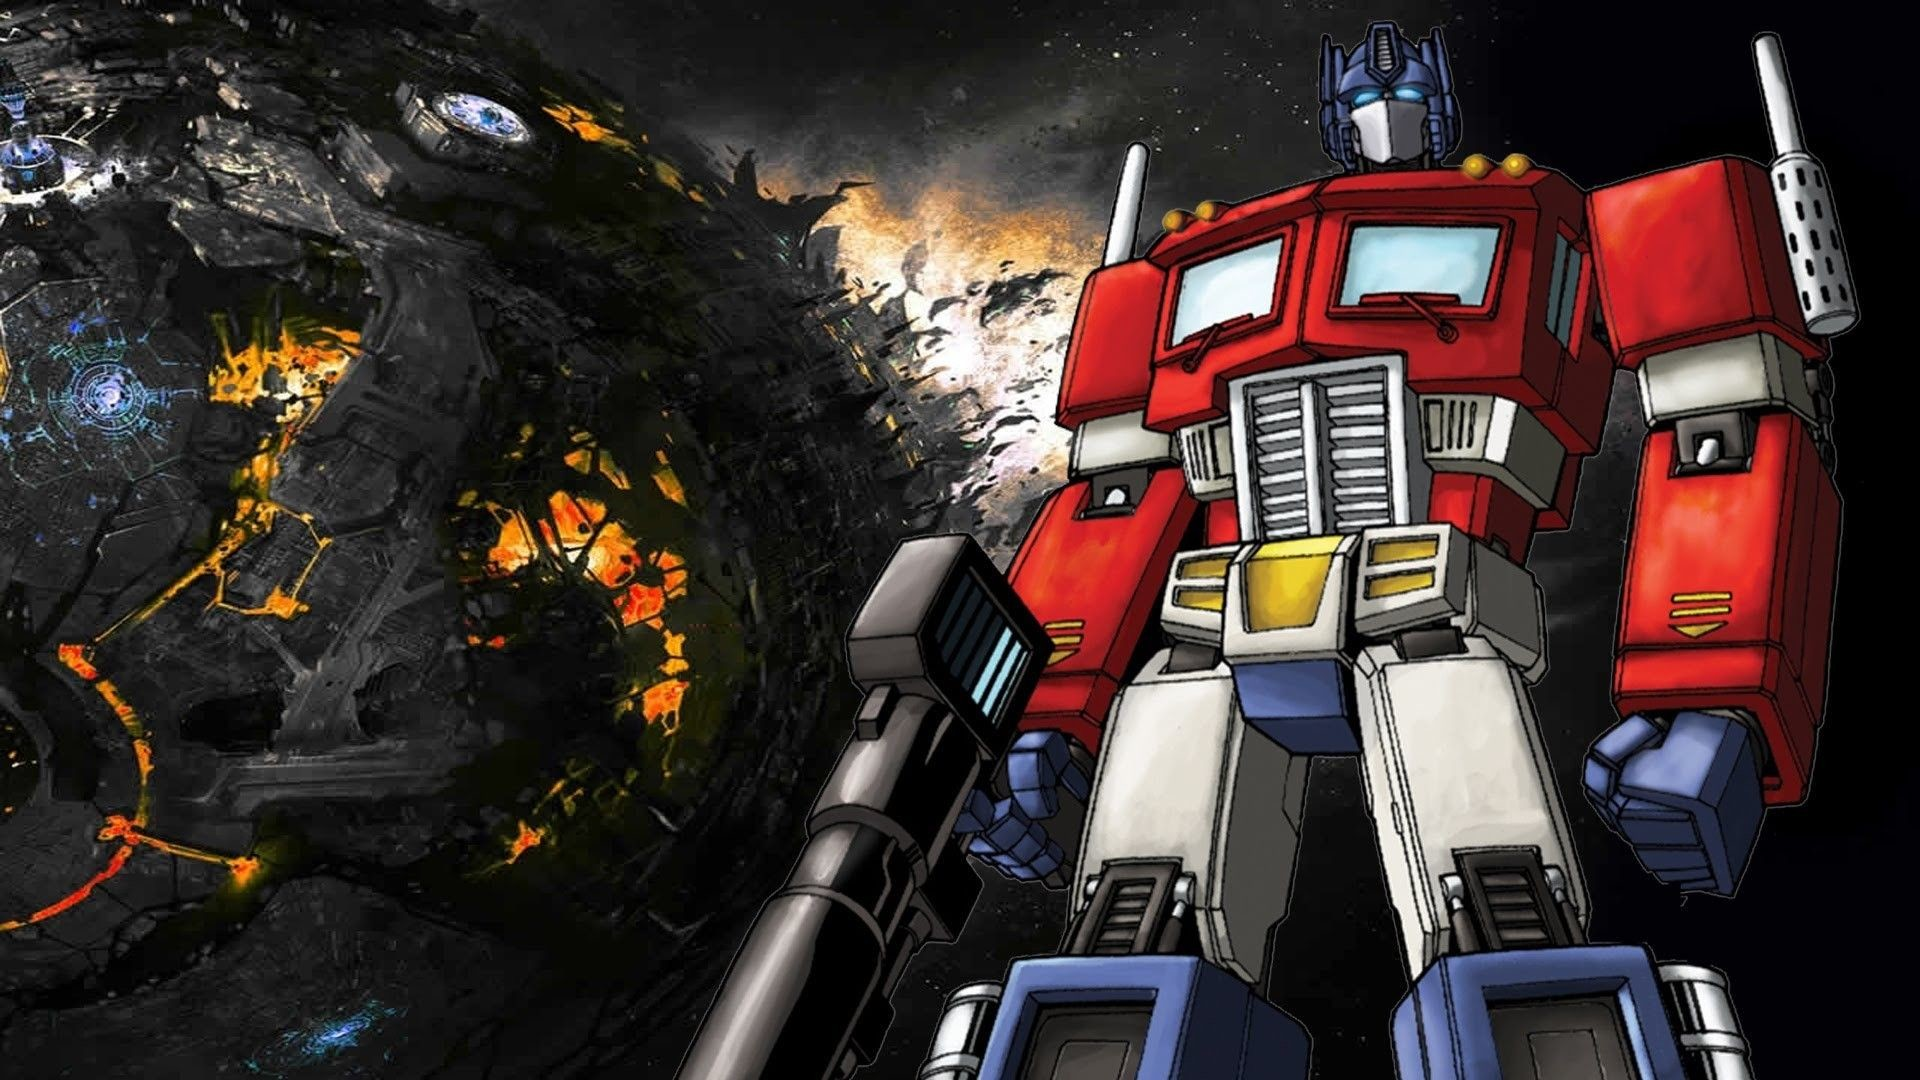 1920x1080 Transformers G1 Wallpaper (48+ images)